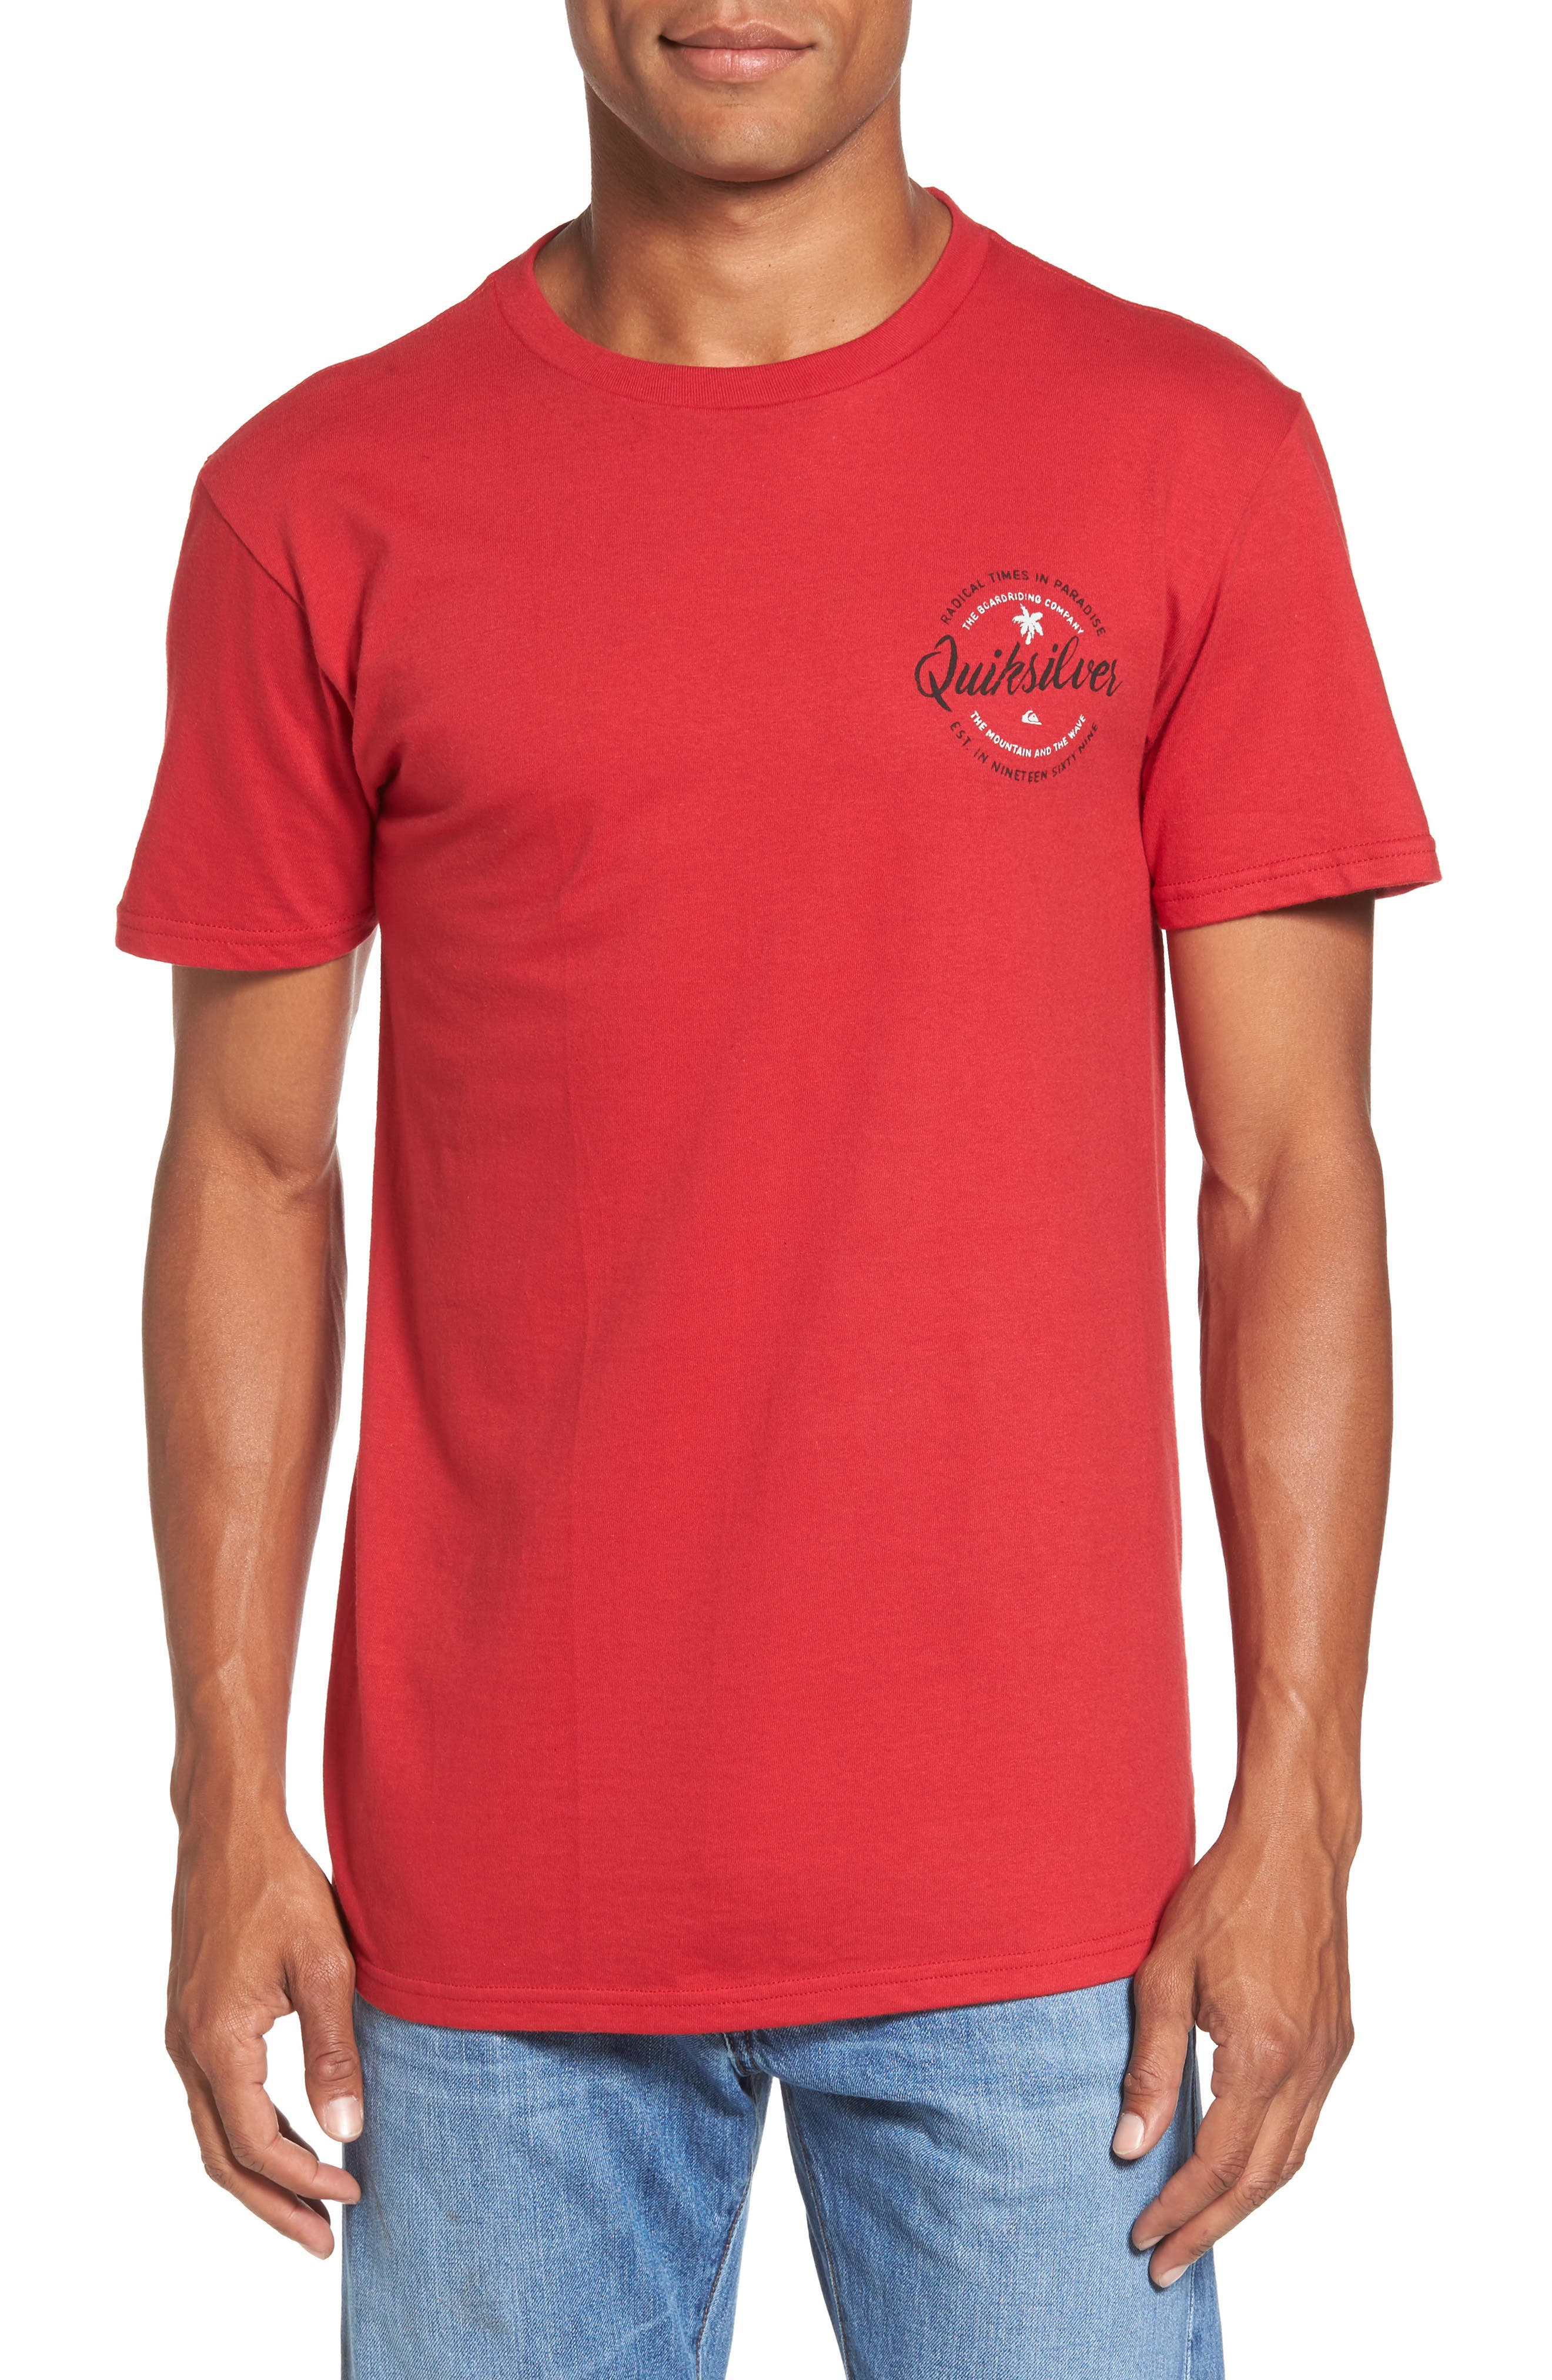 Alternate Image 1 Selected - Quiksilver Holding Dreams MT0 T-Shirt